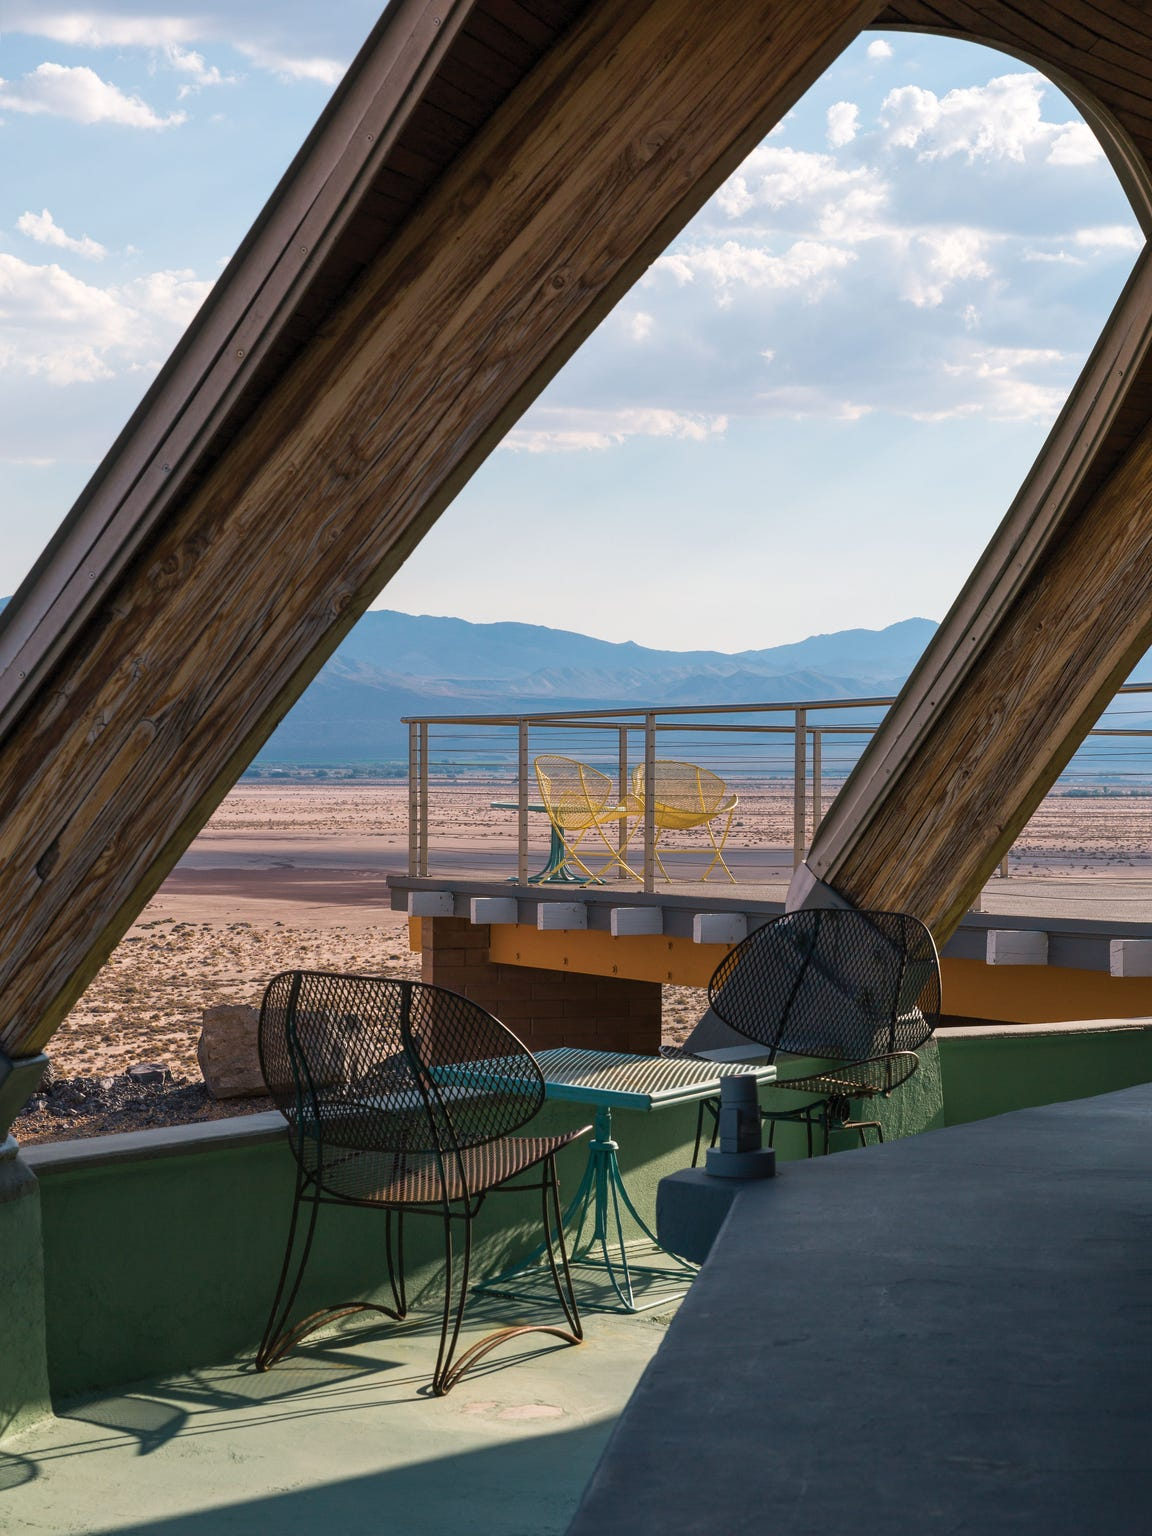 The deck of the Volcano House.